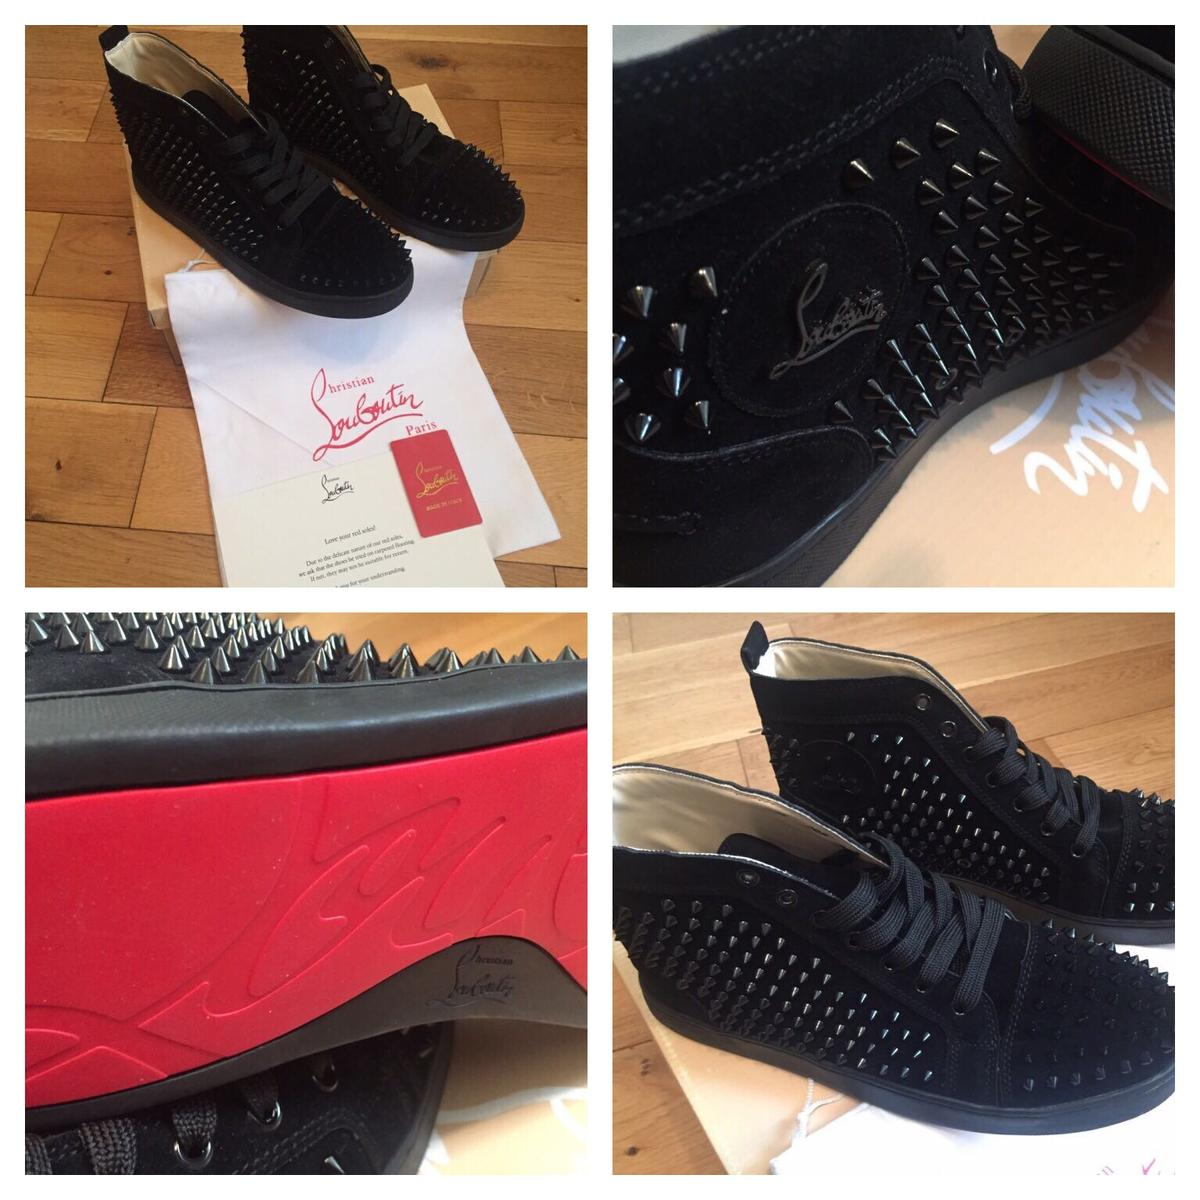 bceadbc8bd9 Christian Louboutin Louis Flat Calf Spike in RG4 Reading for £280.00 ...